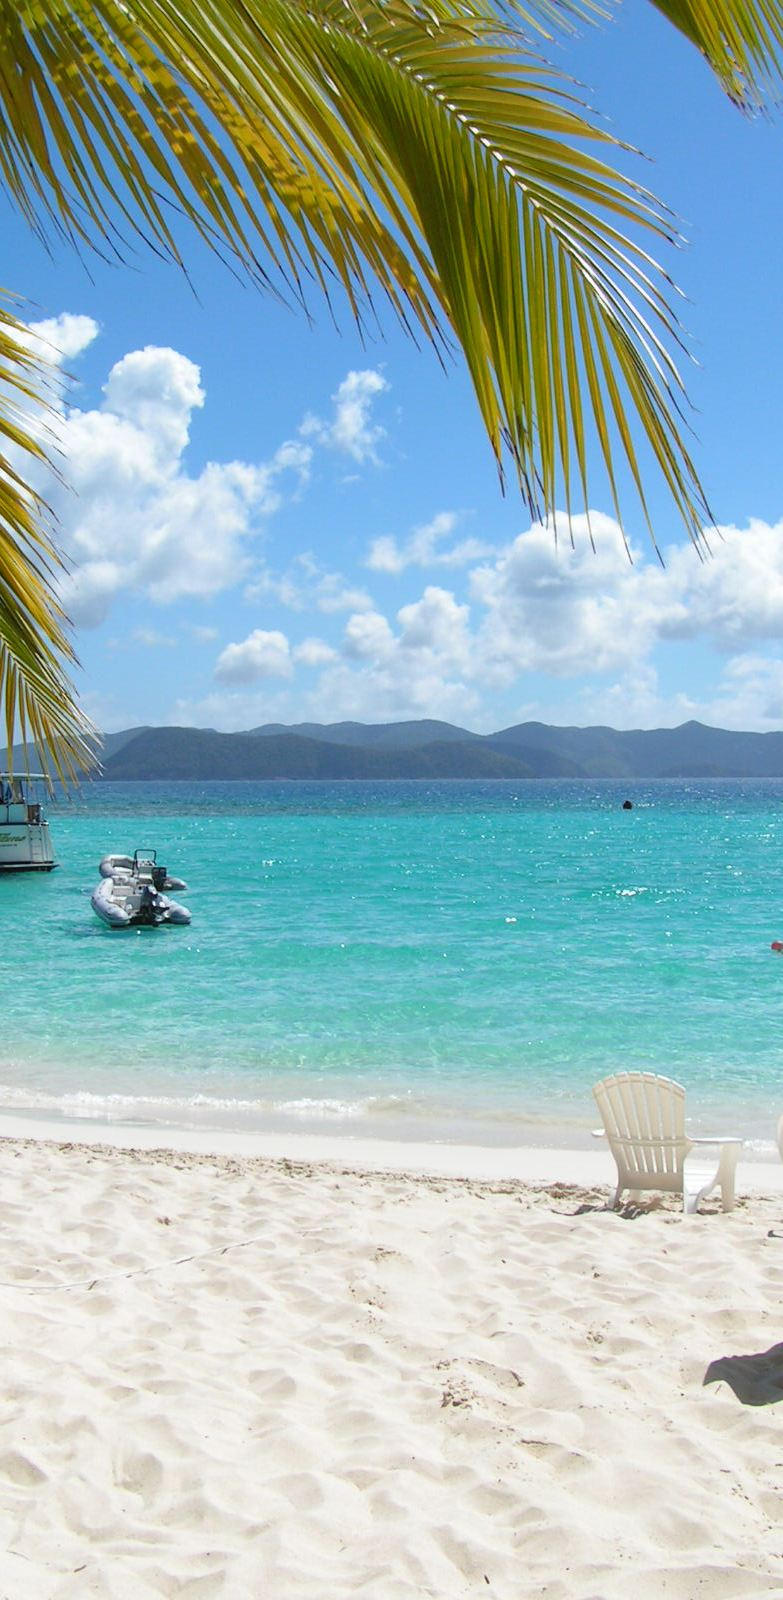 Another surreal view from beautiful Jost Van Dyke looking toward closeby US Virgin Islands